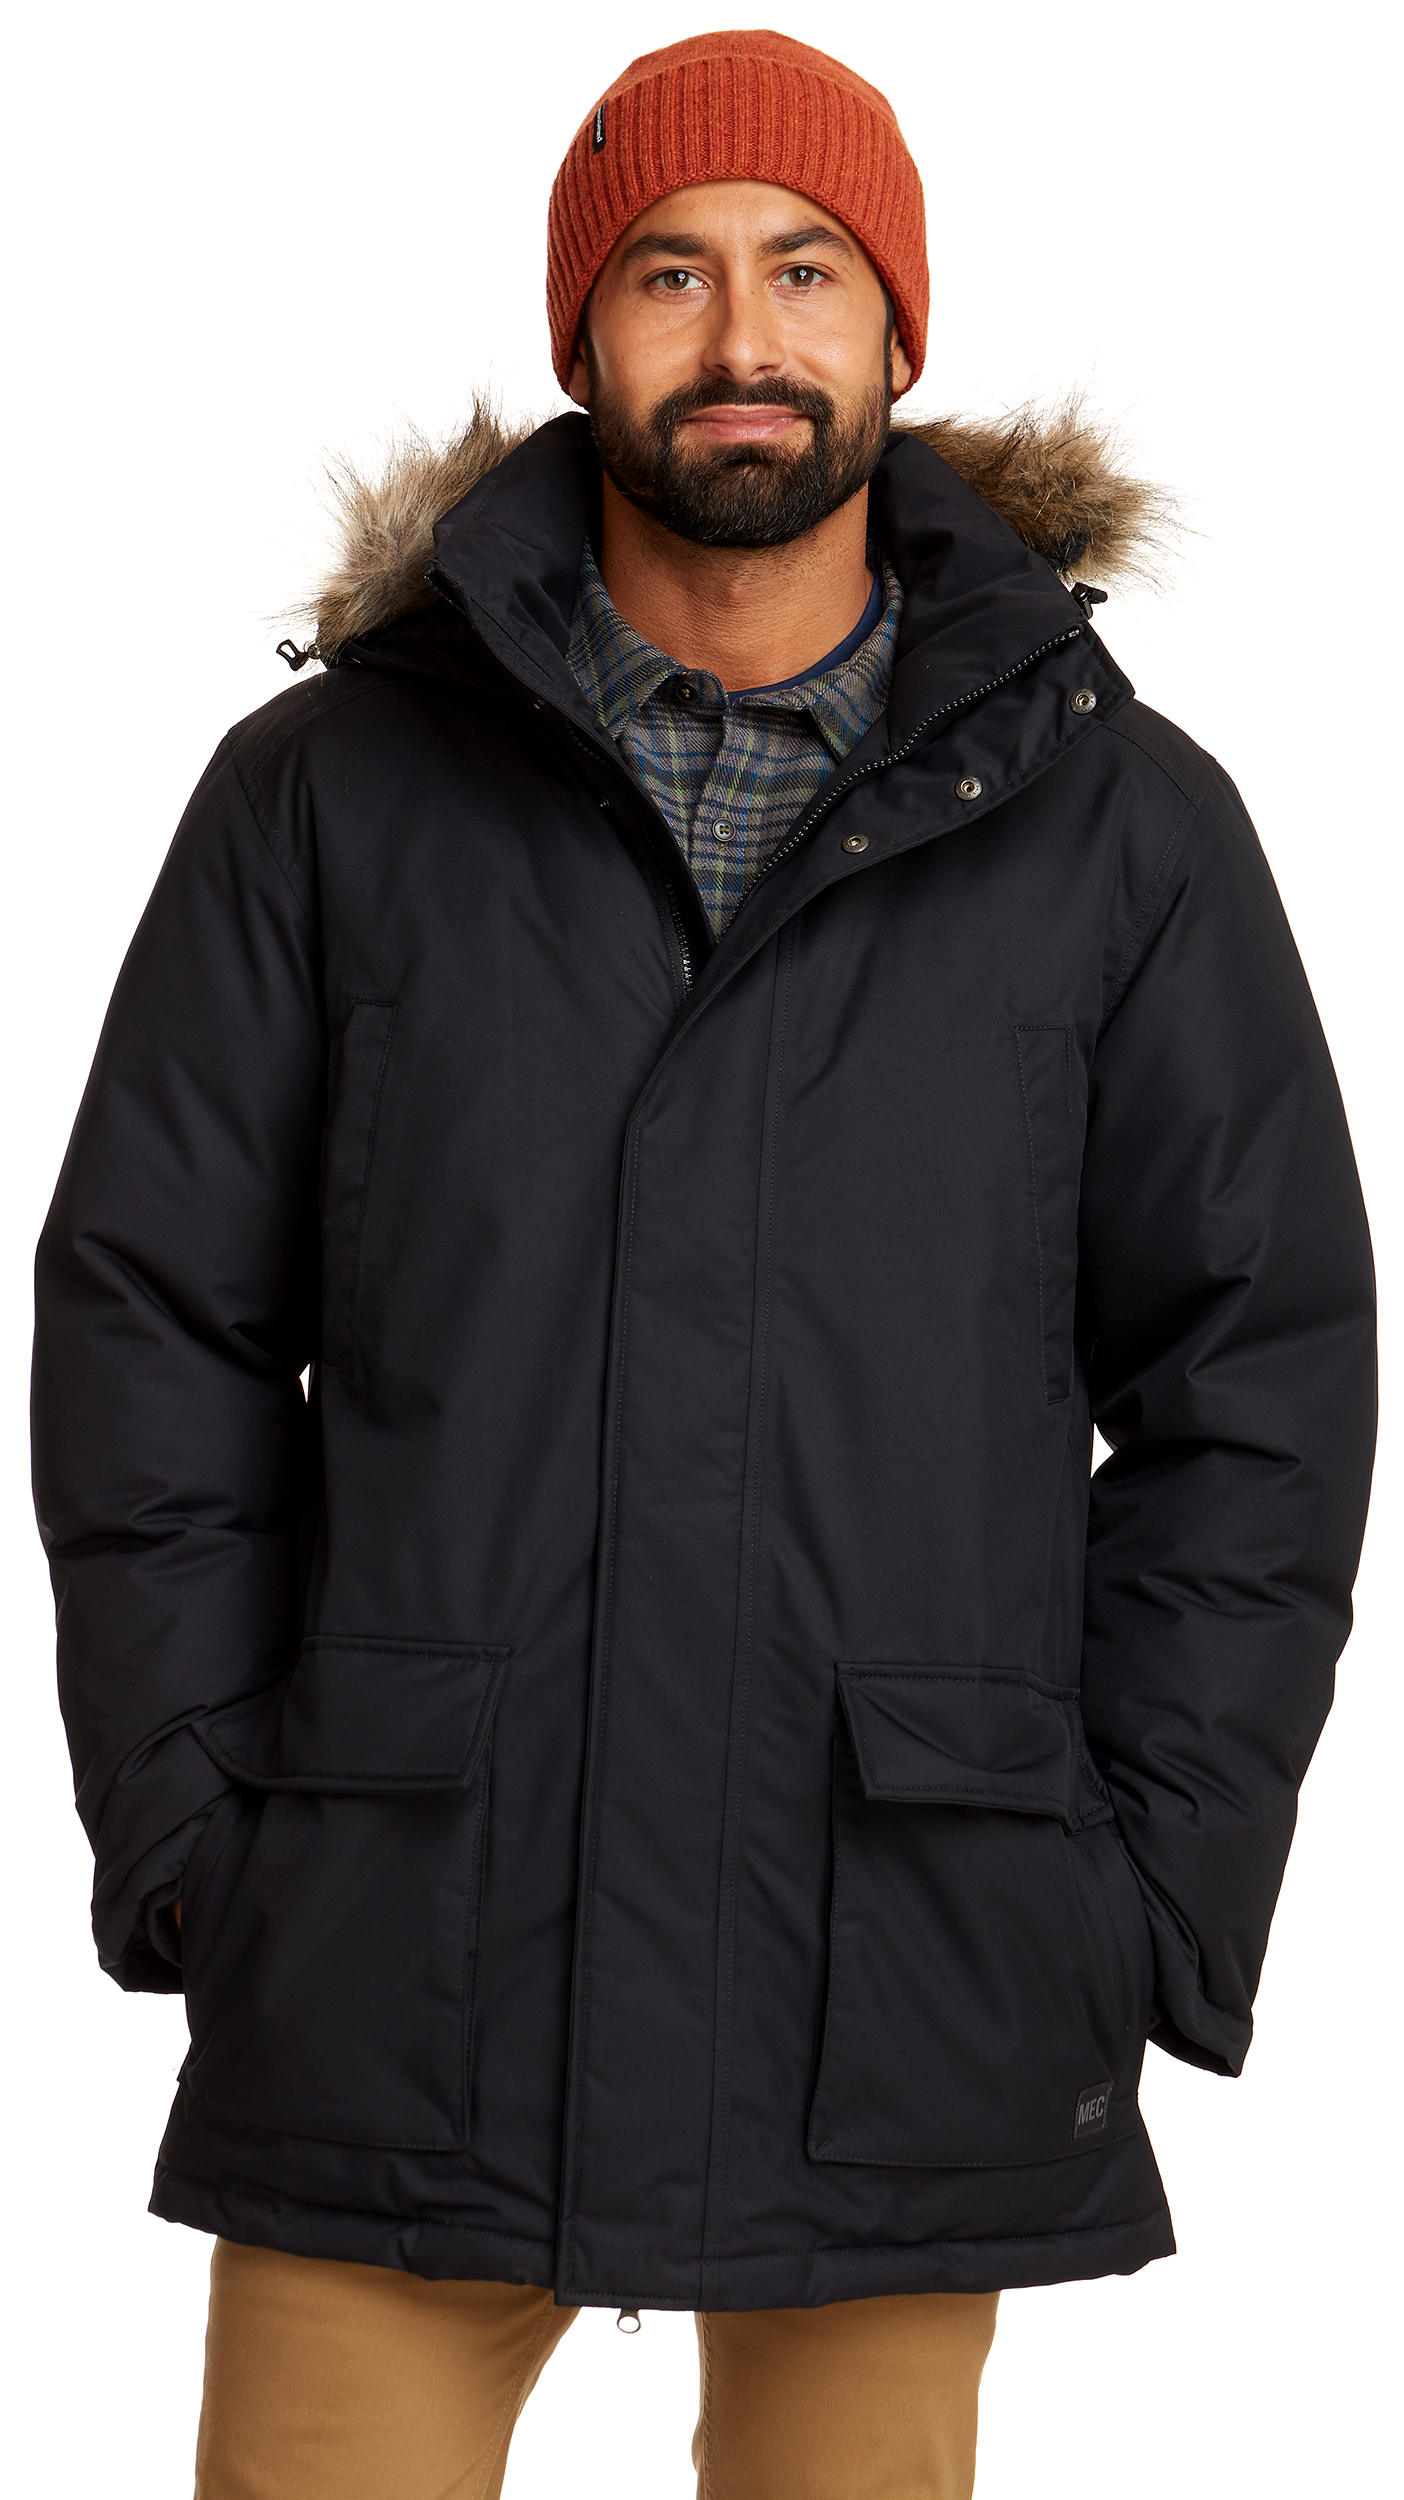 b09082183f8f2 Parkas and winter coats | MEC